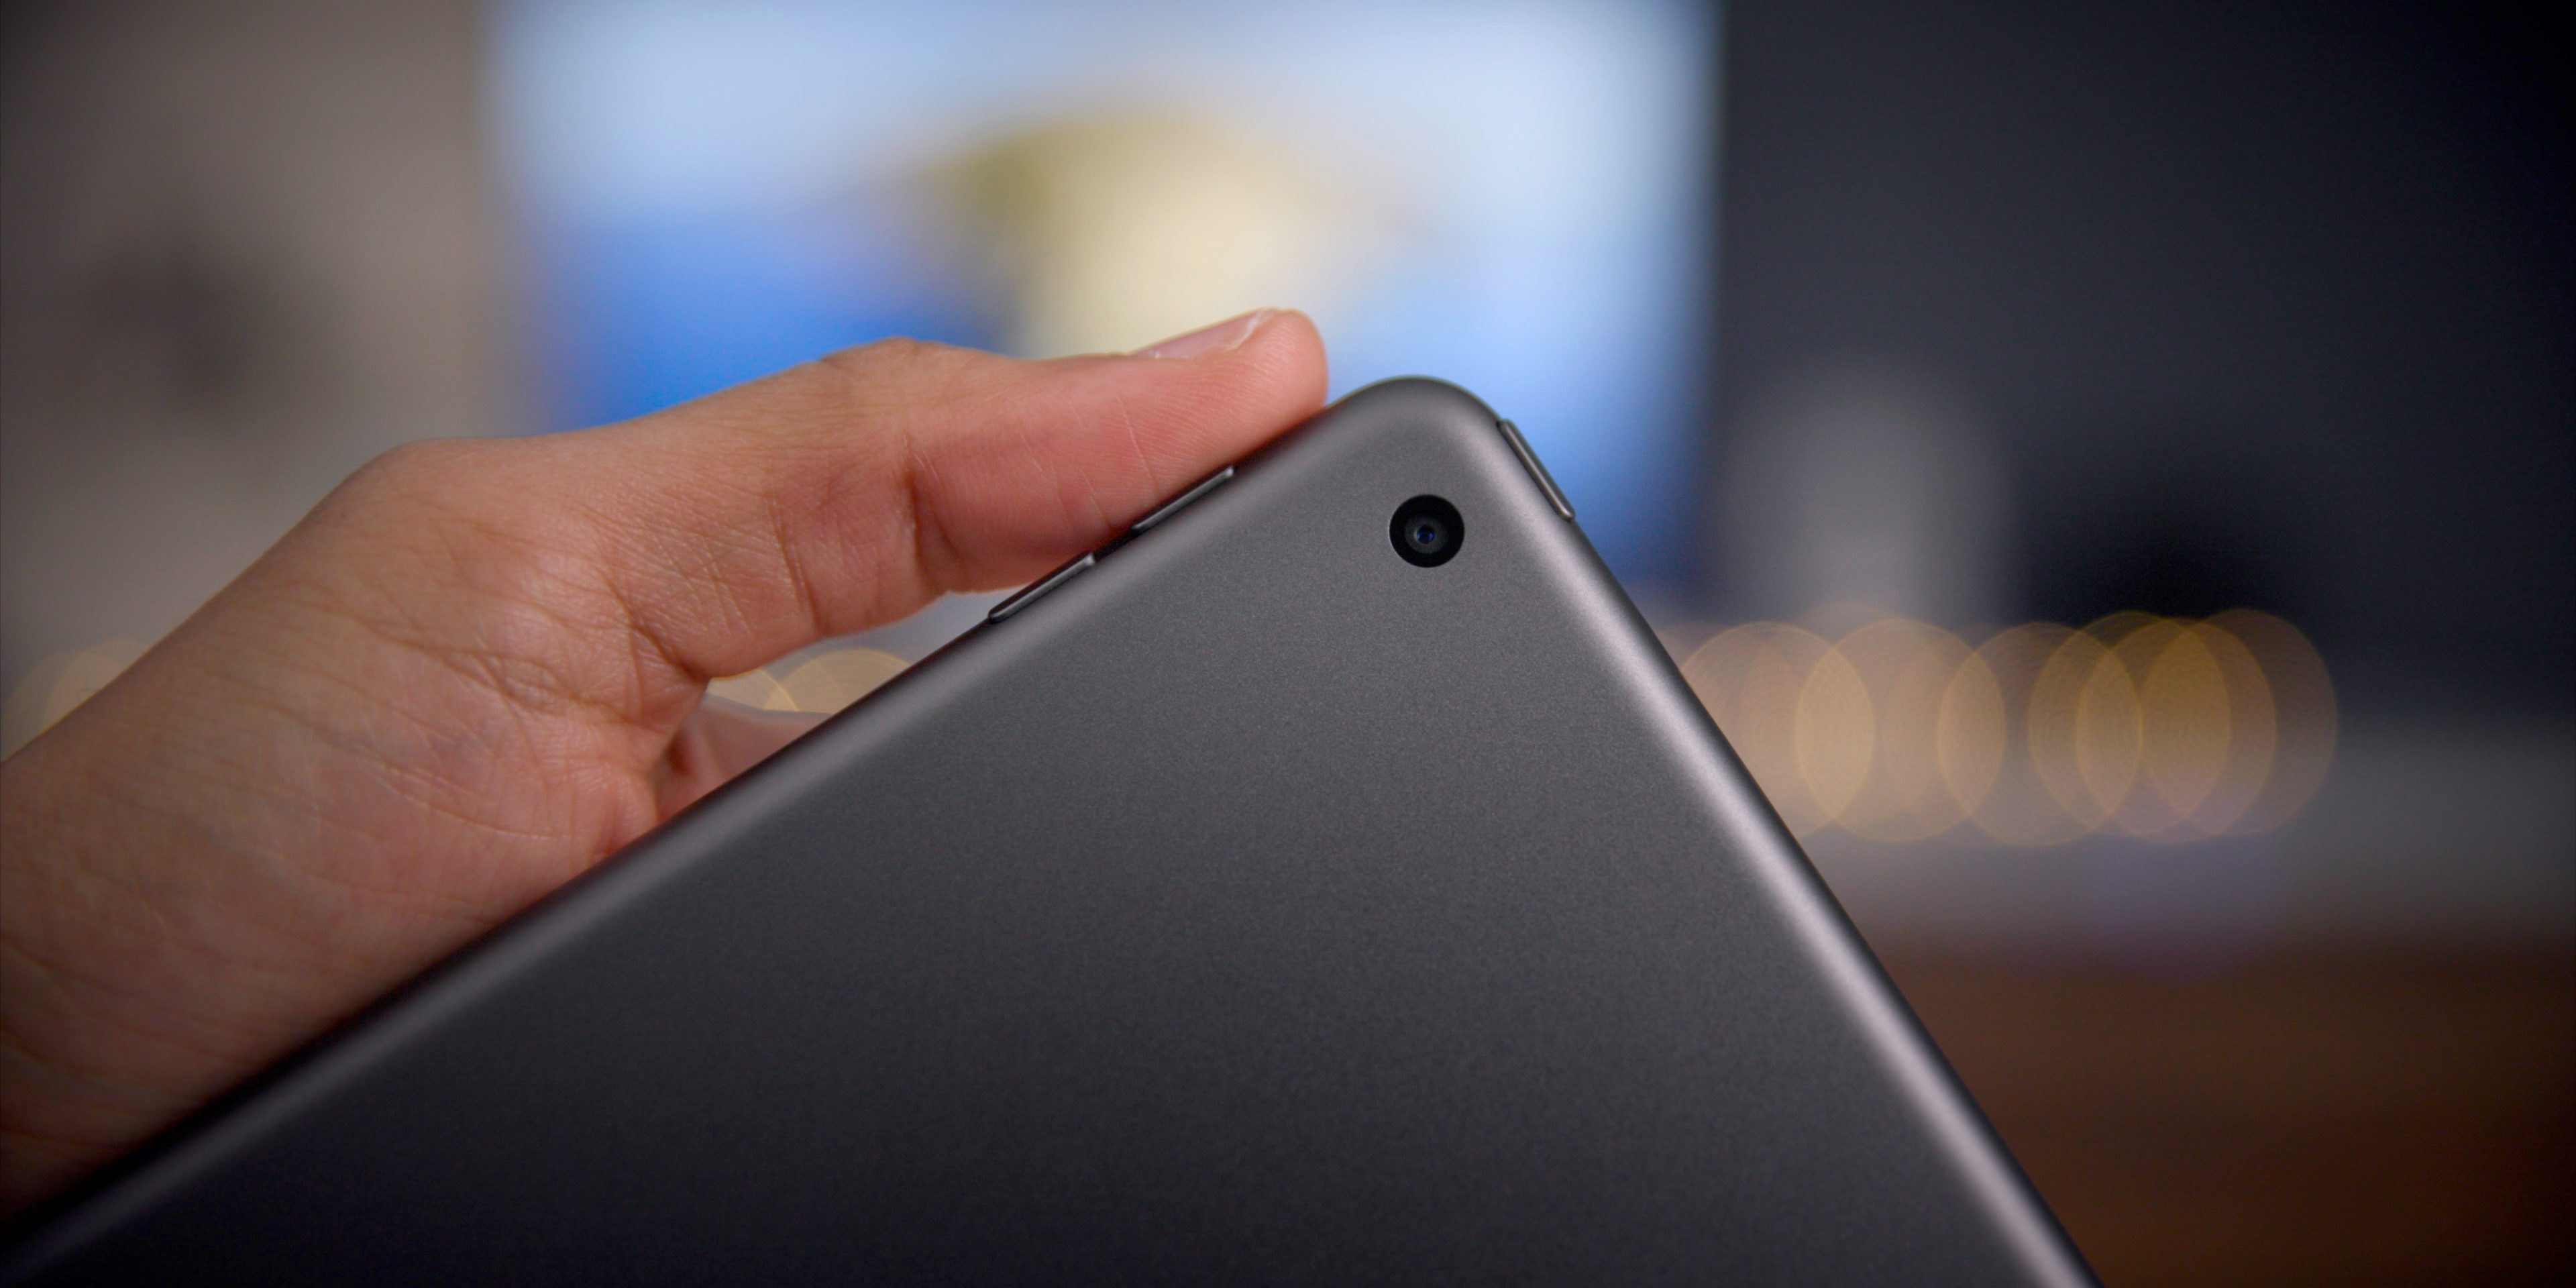 "<span href=""https://9to5mac.com/2020/04/28/which-ipad-should-you-buy-hands-on-with-the-ipad-7-ipad-mini-5-ipad-air-3-and-ipad-pro-2020/"">Que el iPad debe usted comprar? De la mano con el iPad de 7, iPad mini 5, iPad Air 3 y el iPad Pro (2020)</a>"